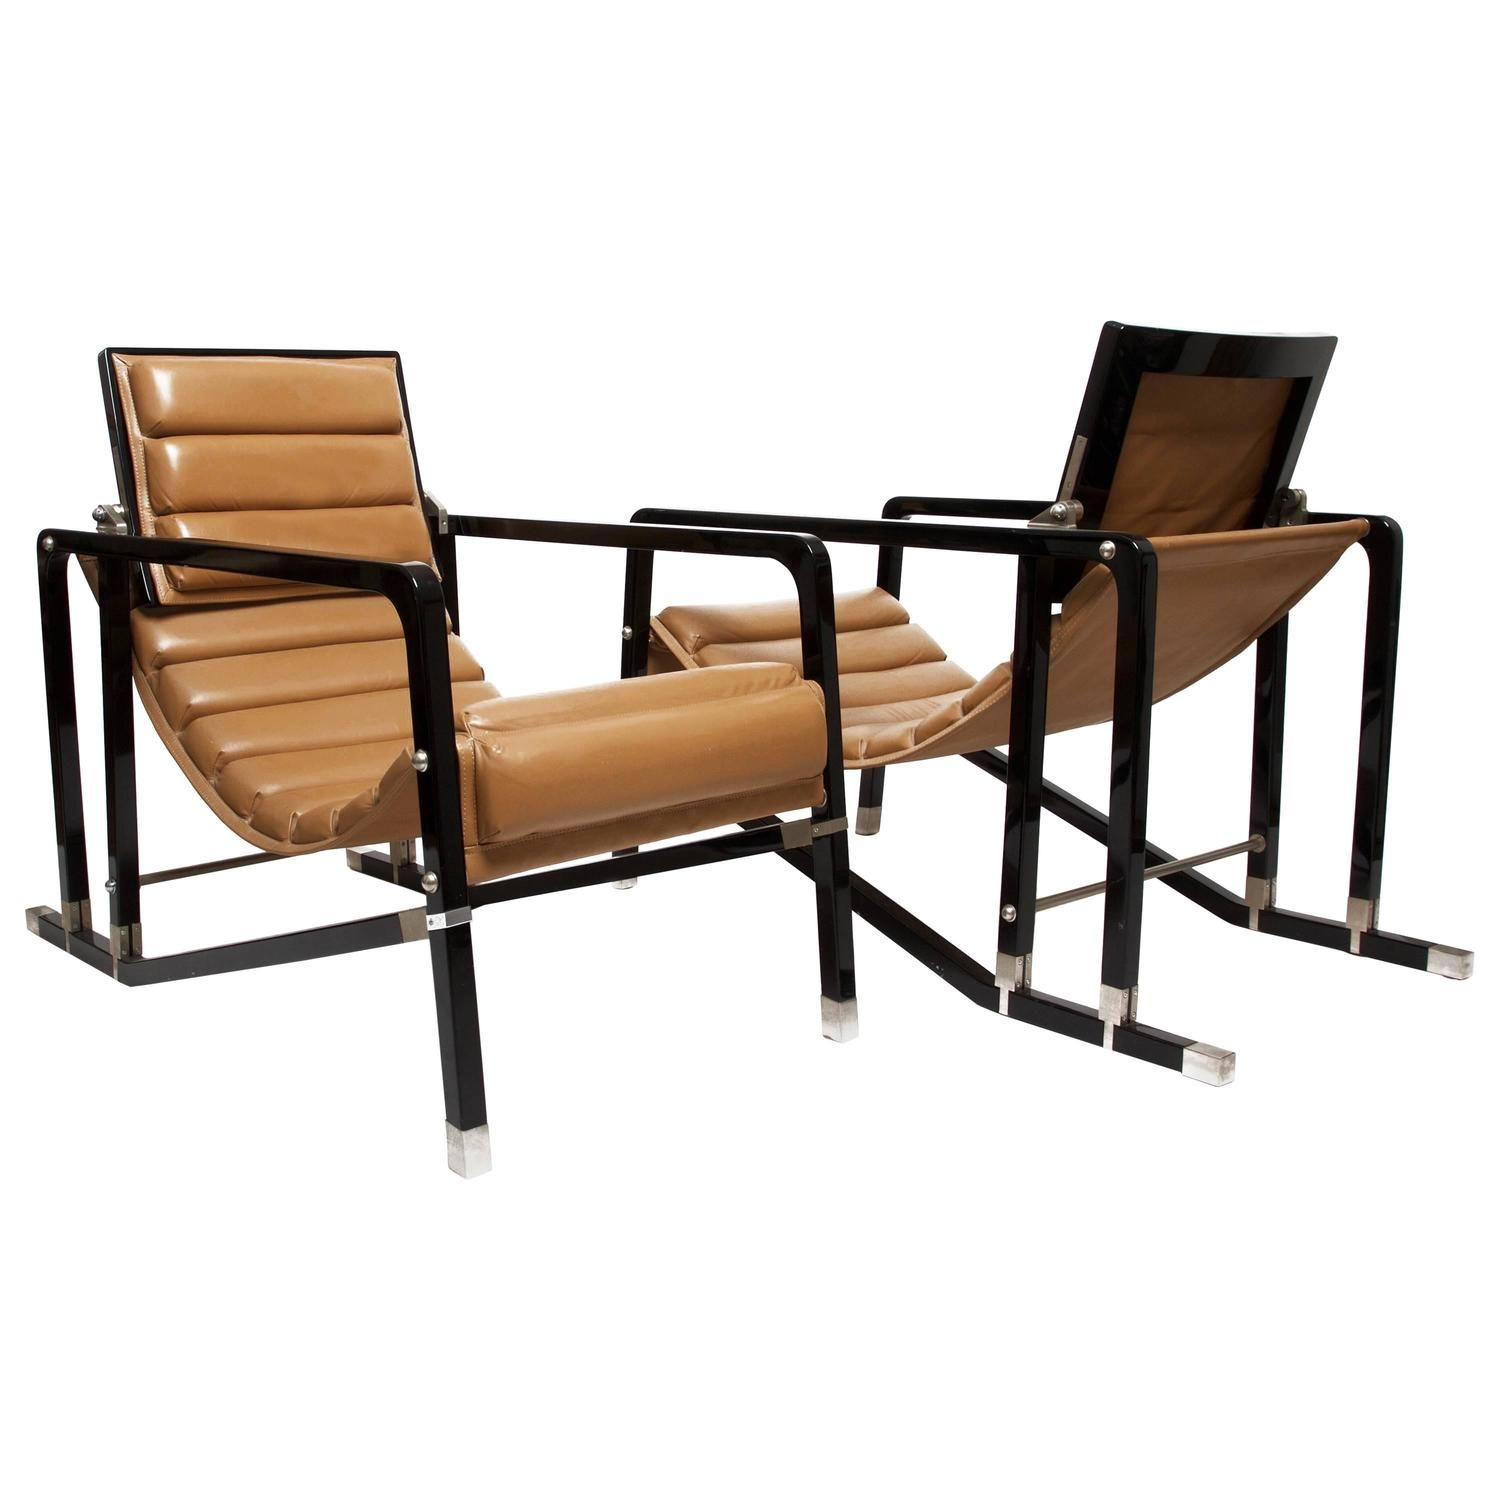 eileen grey furniture exellent furniture eileen gray pair of transat